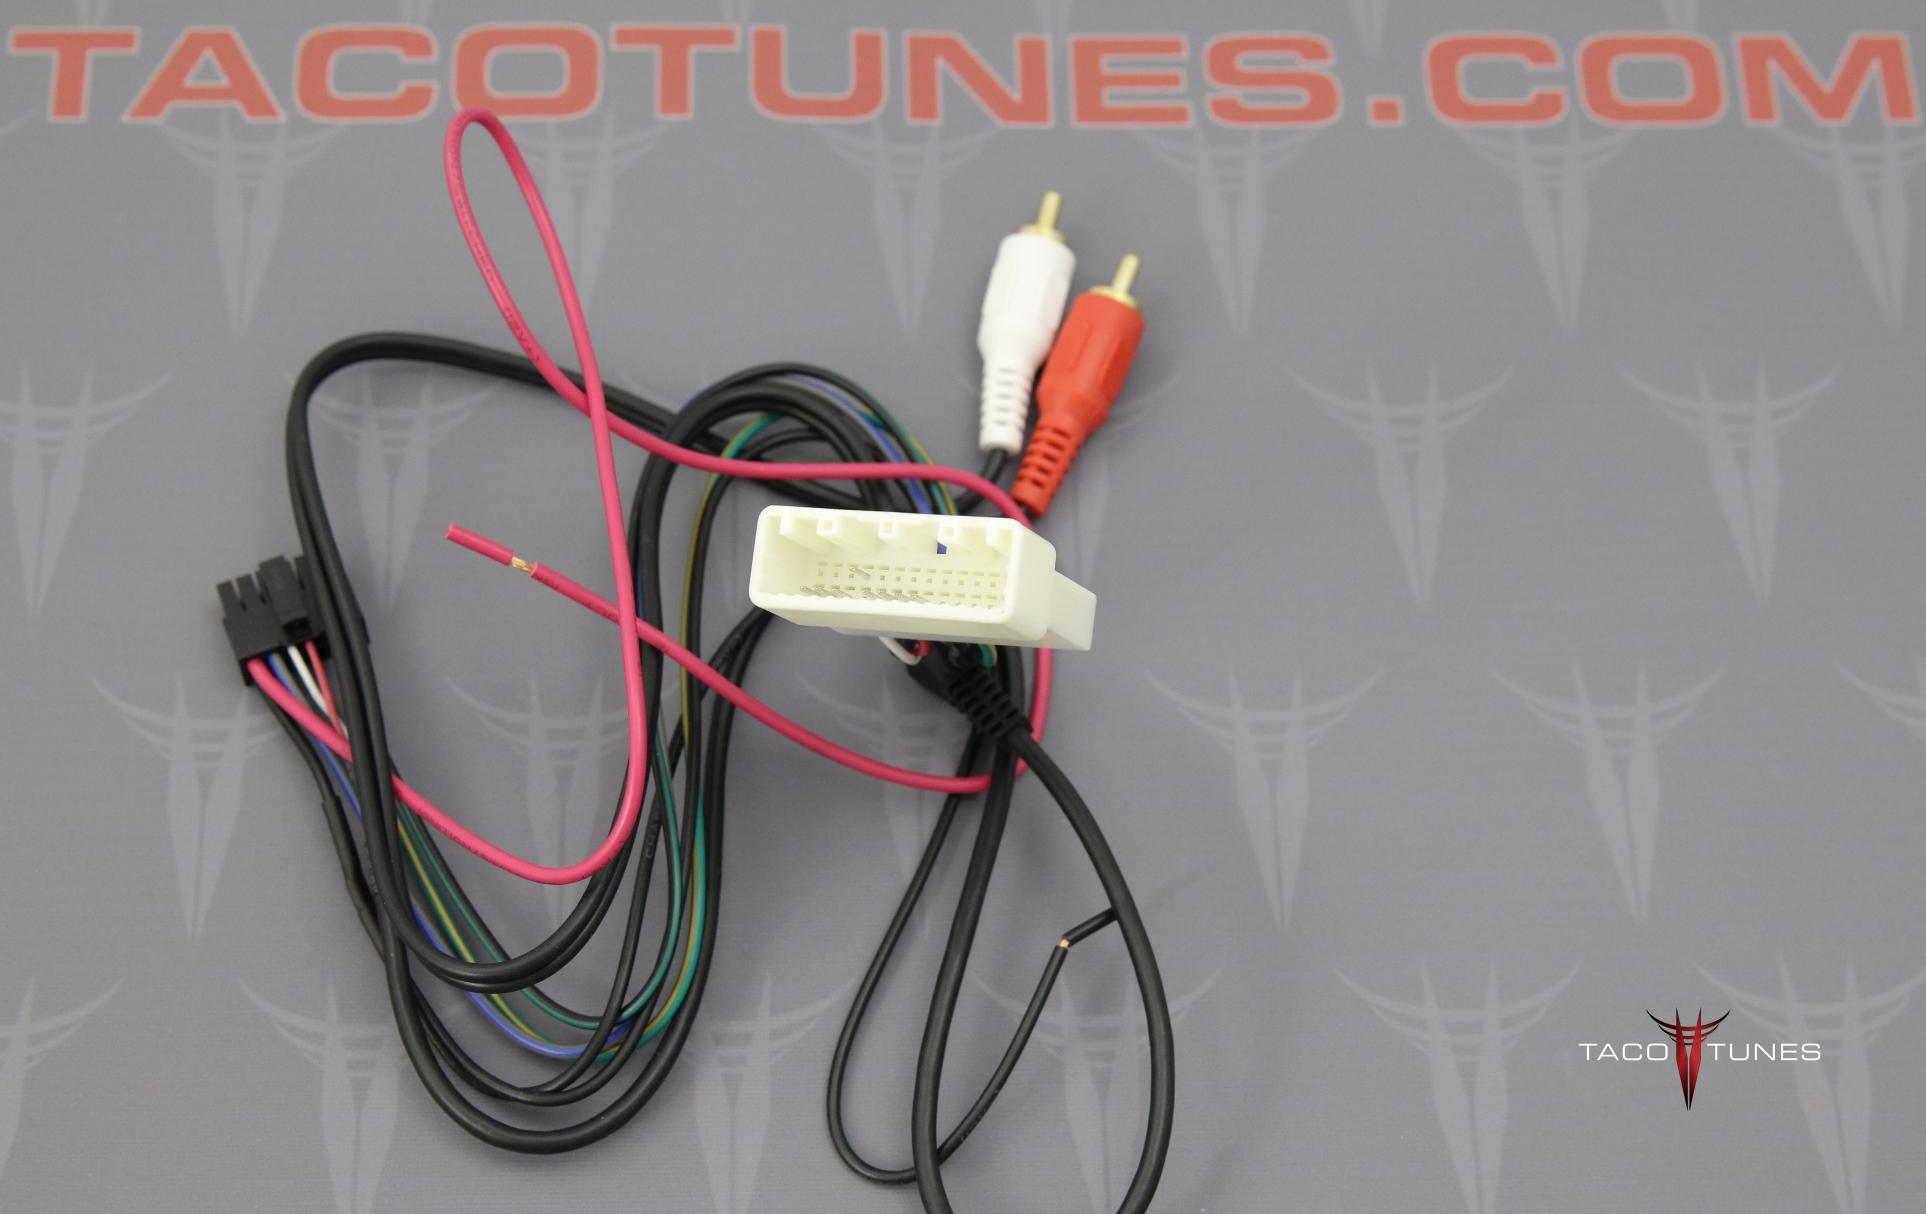 Cable Configuration Wiring Harness Wiring Diagram Wiring